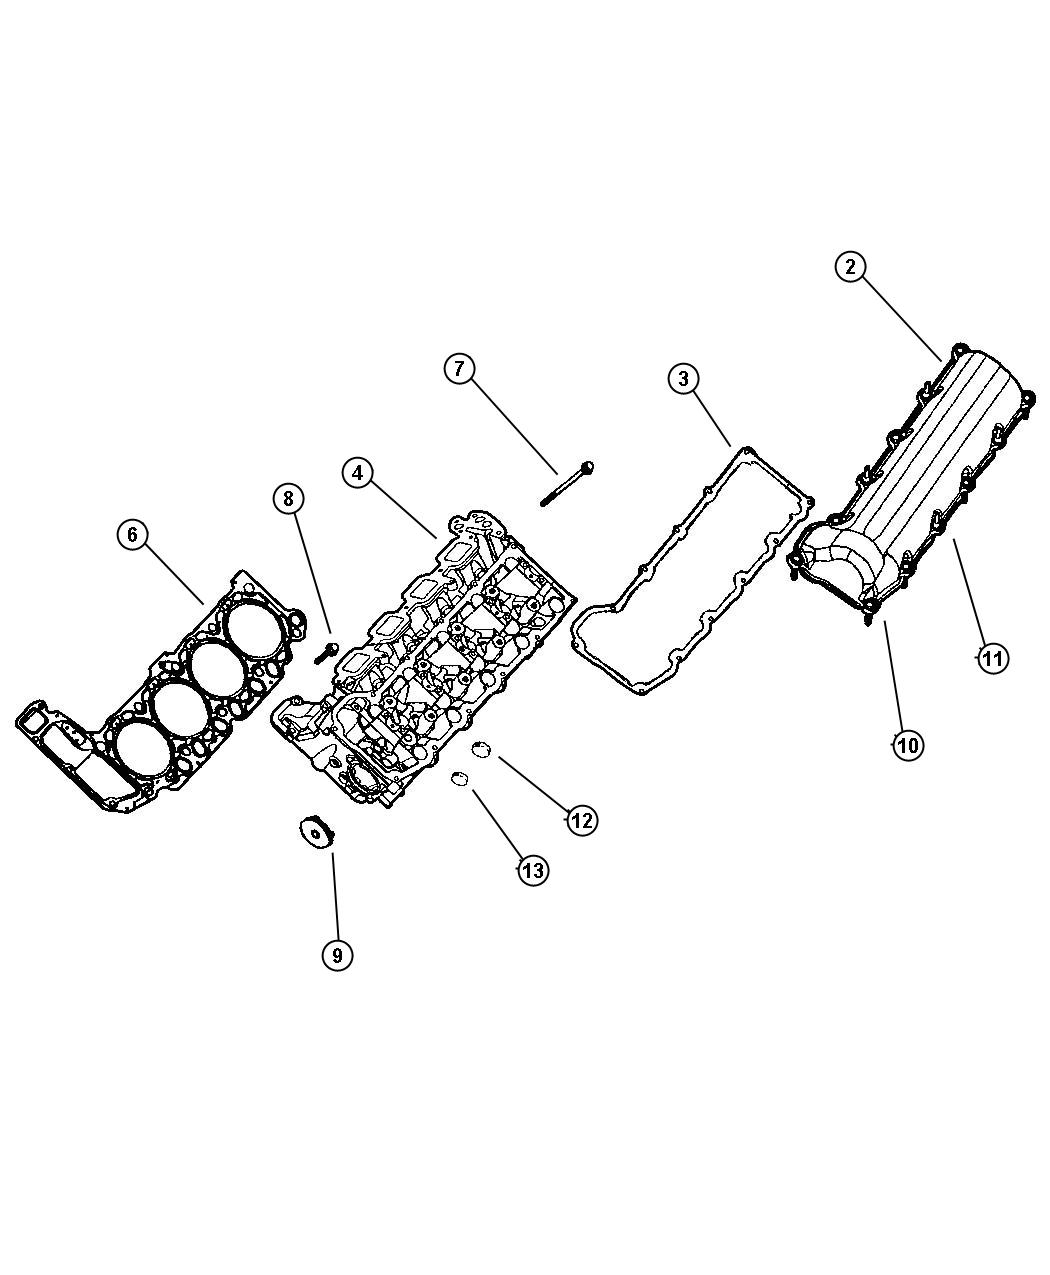 Dodge Durango Bolt Used For Screw And Washer Hex Head